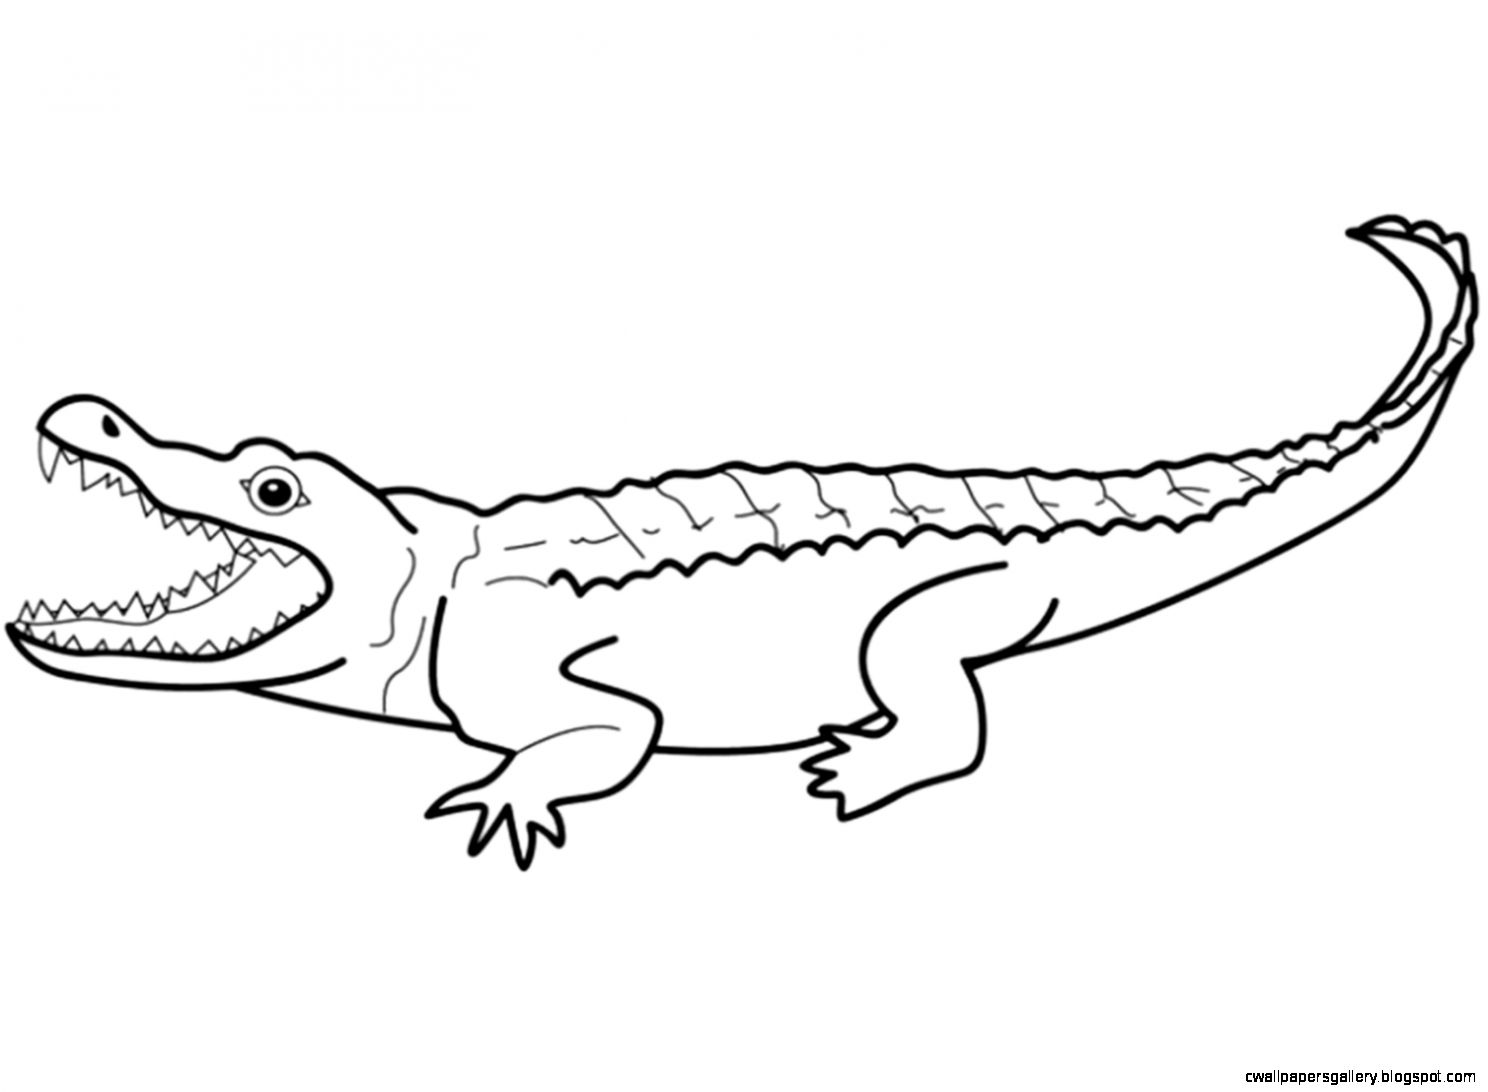 amphibian coloring pages | Amphibians And Reptiles | Wallpapers Gallery